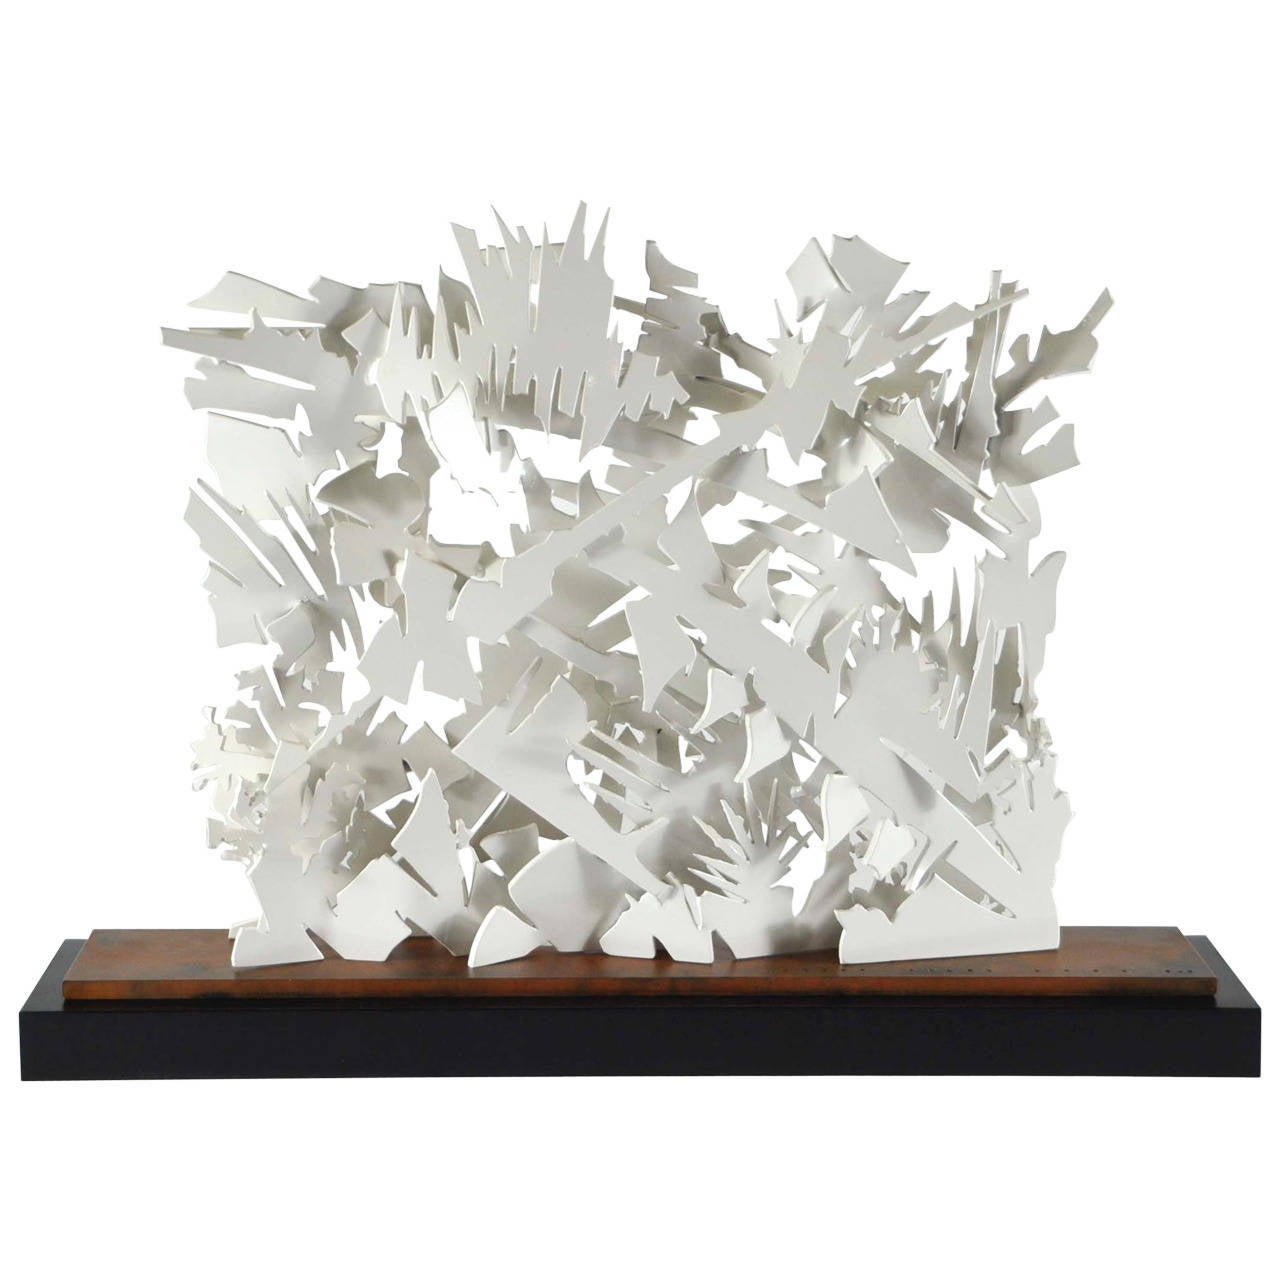 Albert paley interlace sculpture white metal with wood for Jill alberts jewelry highland park